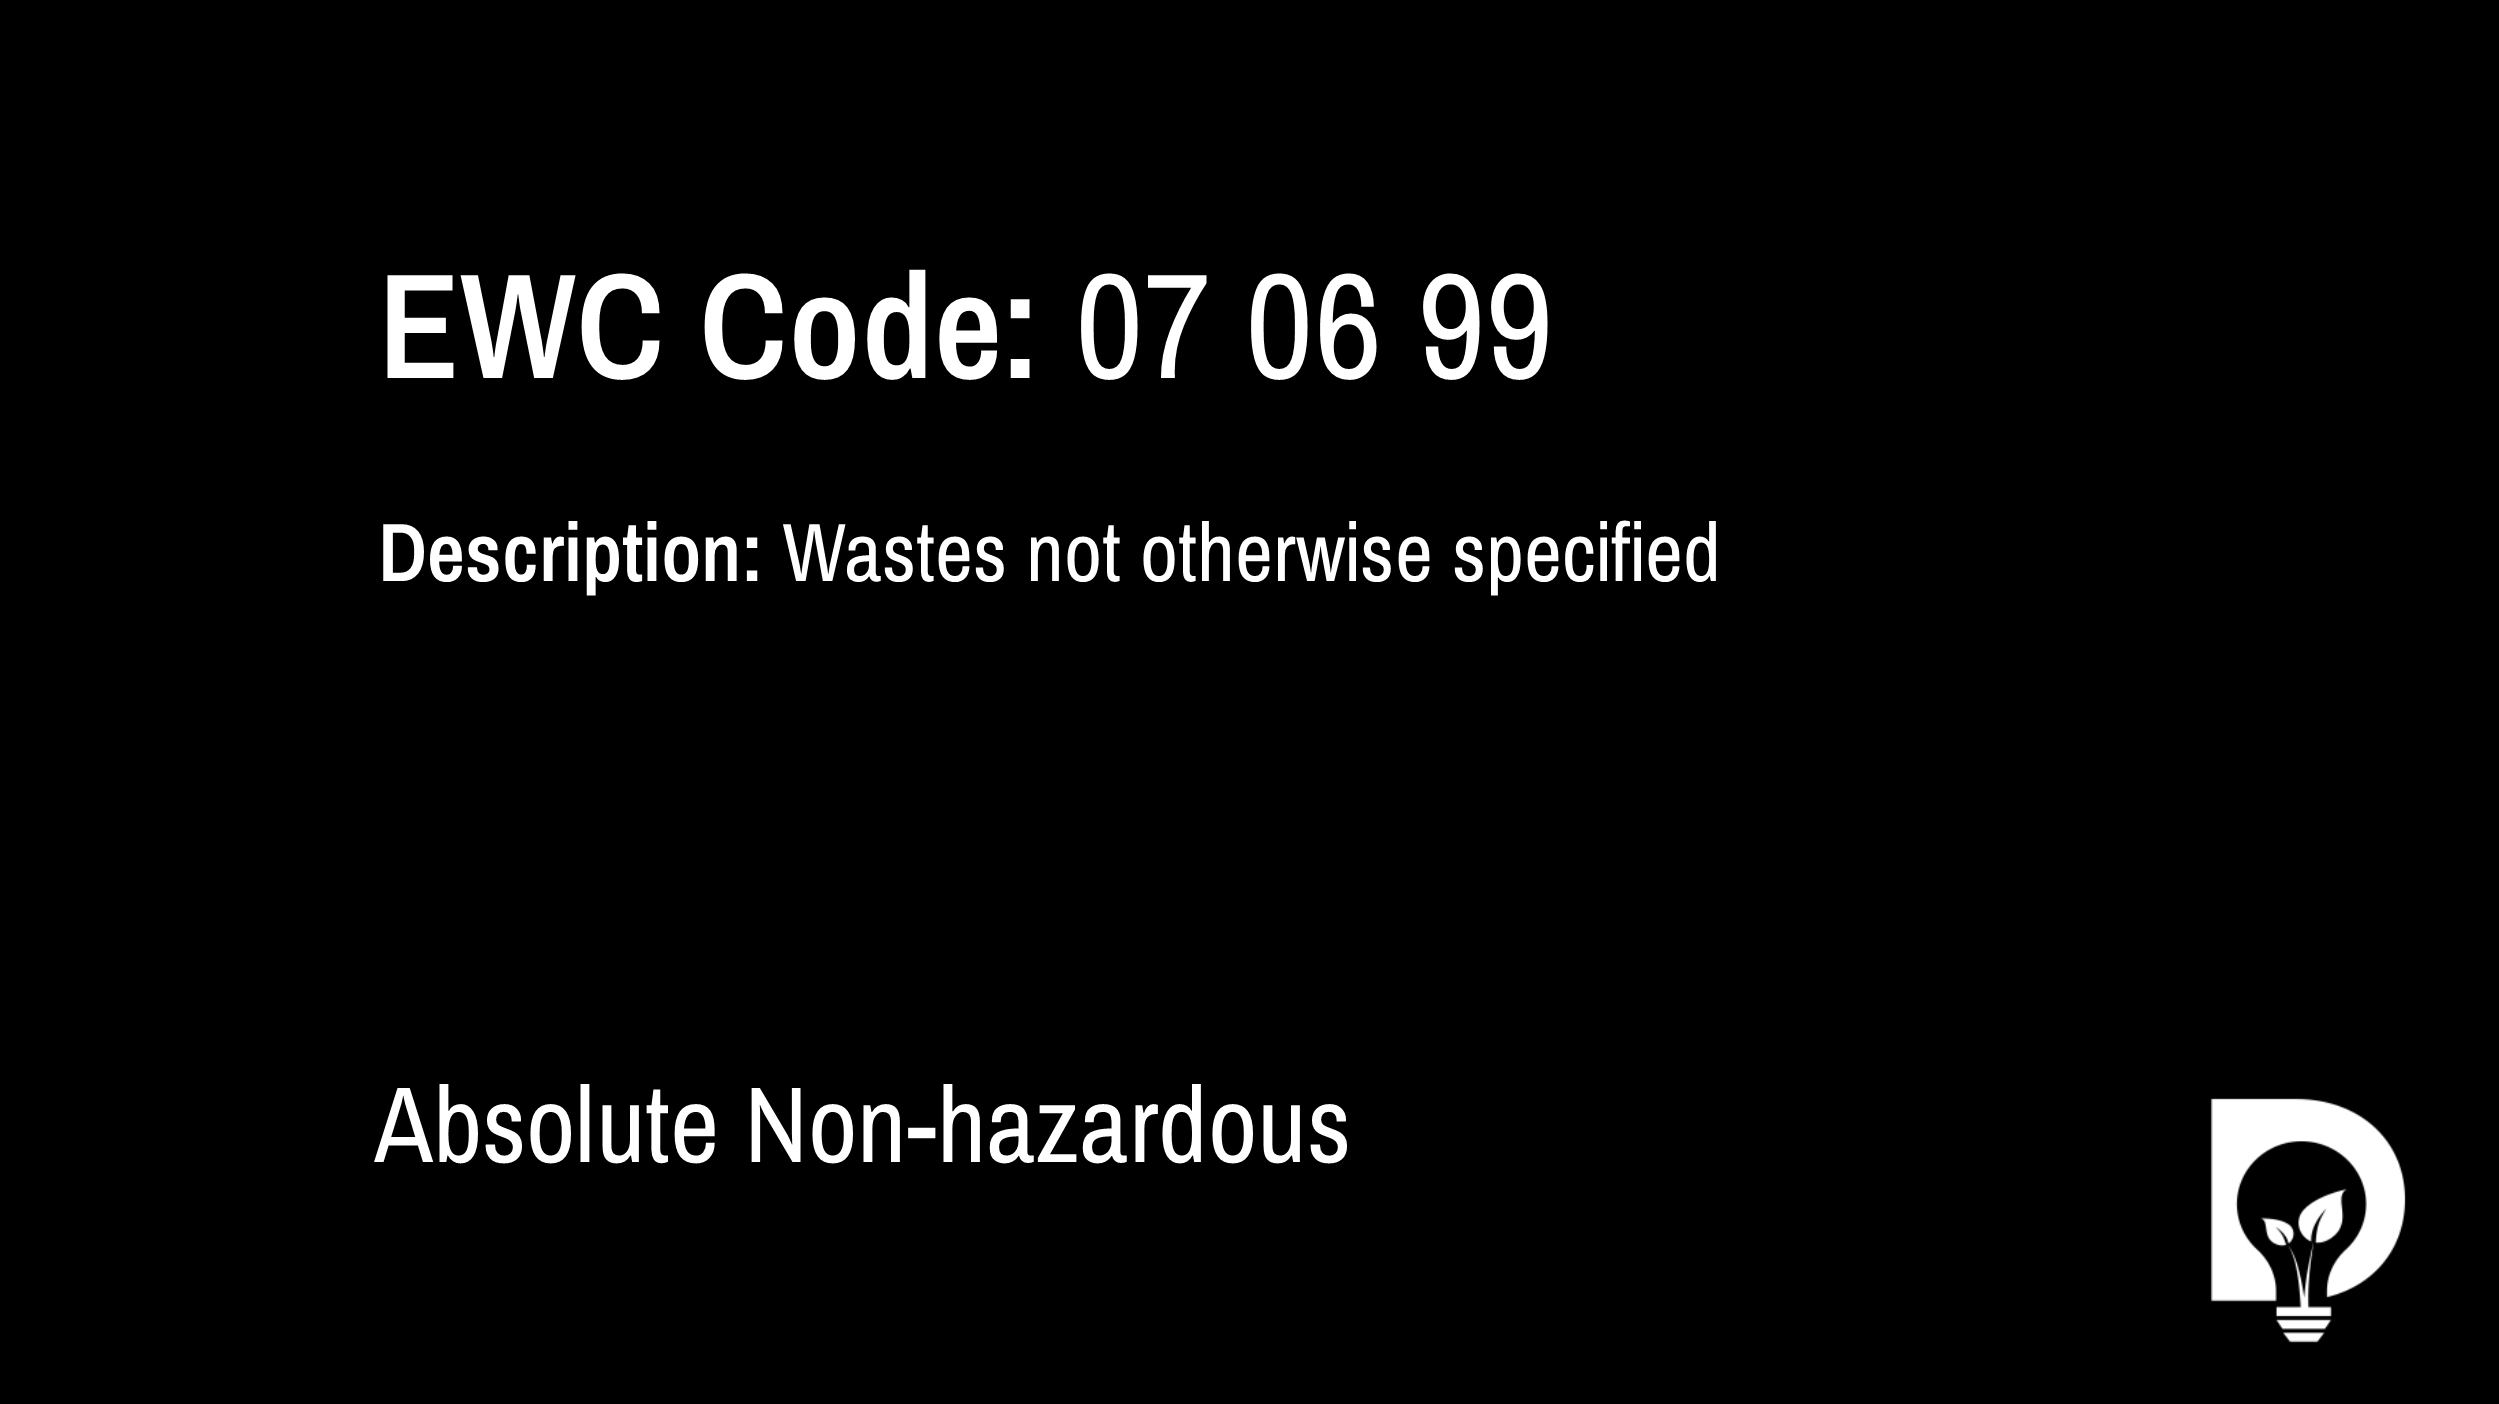 EWC Code: 07 06 99 - wastes not otherwise specified. Type: Absolute Non-hazardous. Image by Dsposal